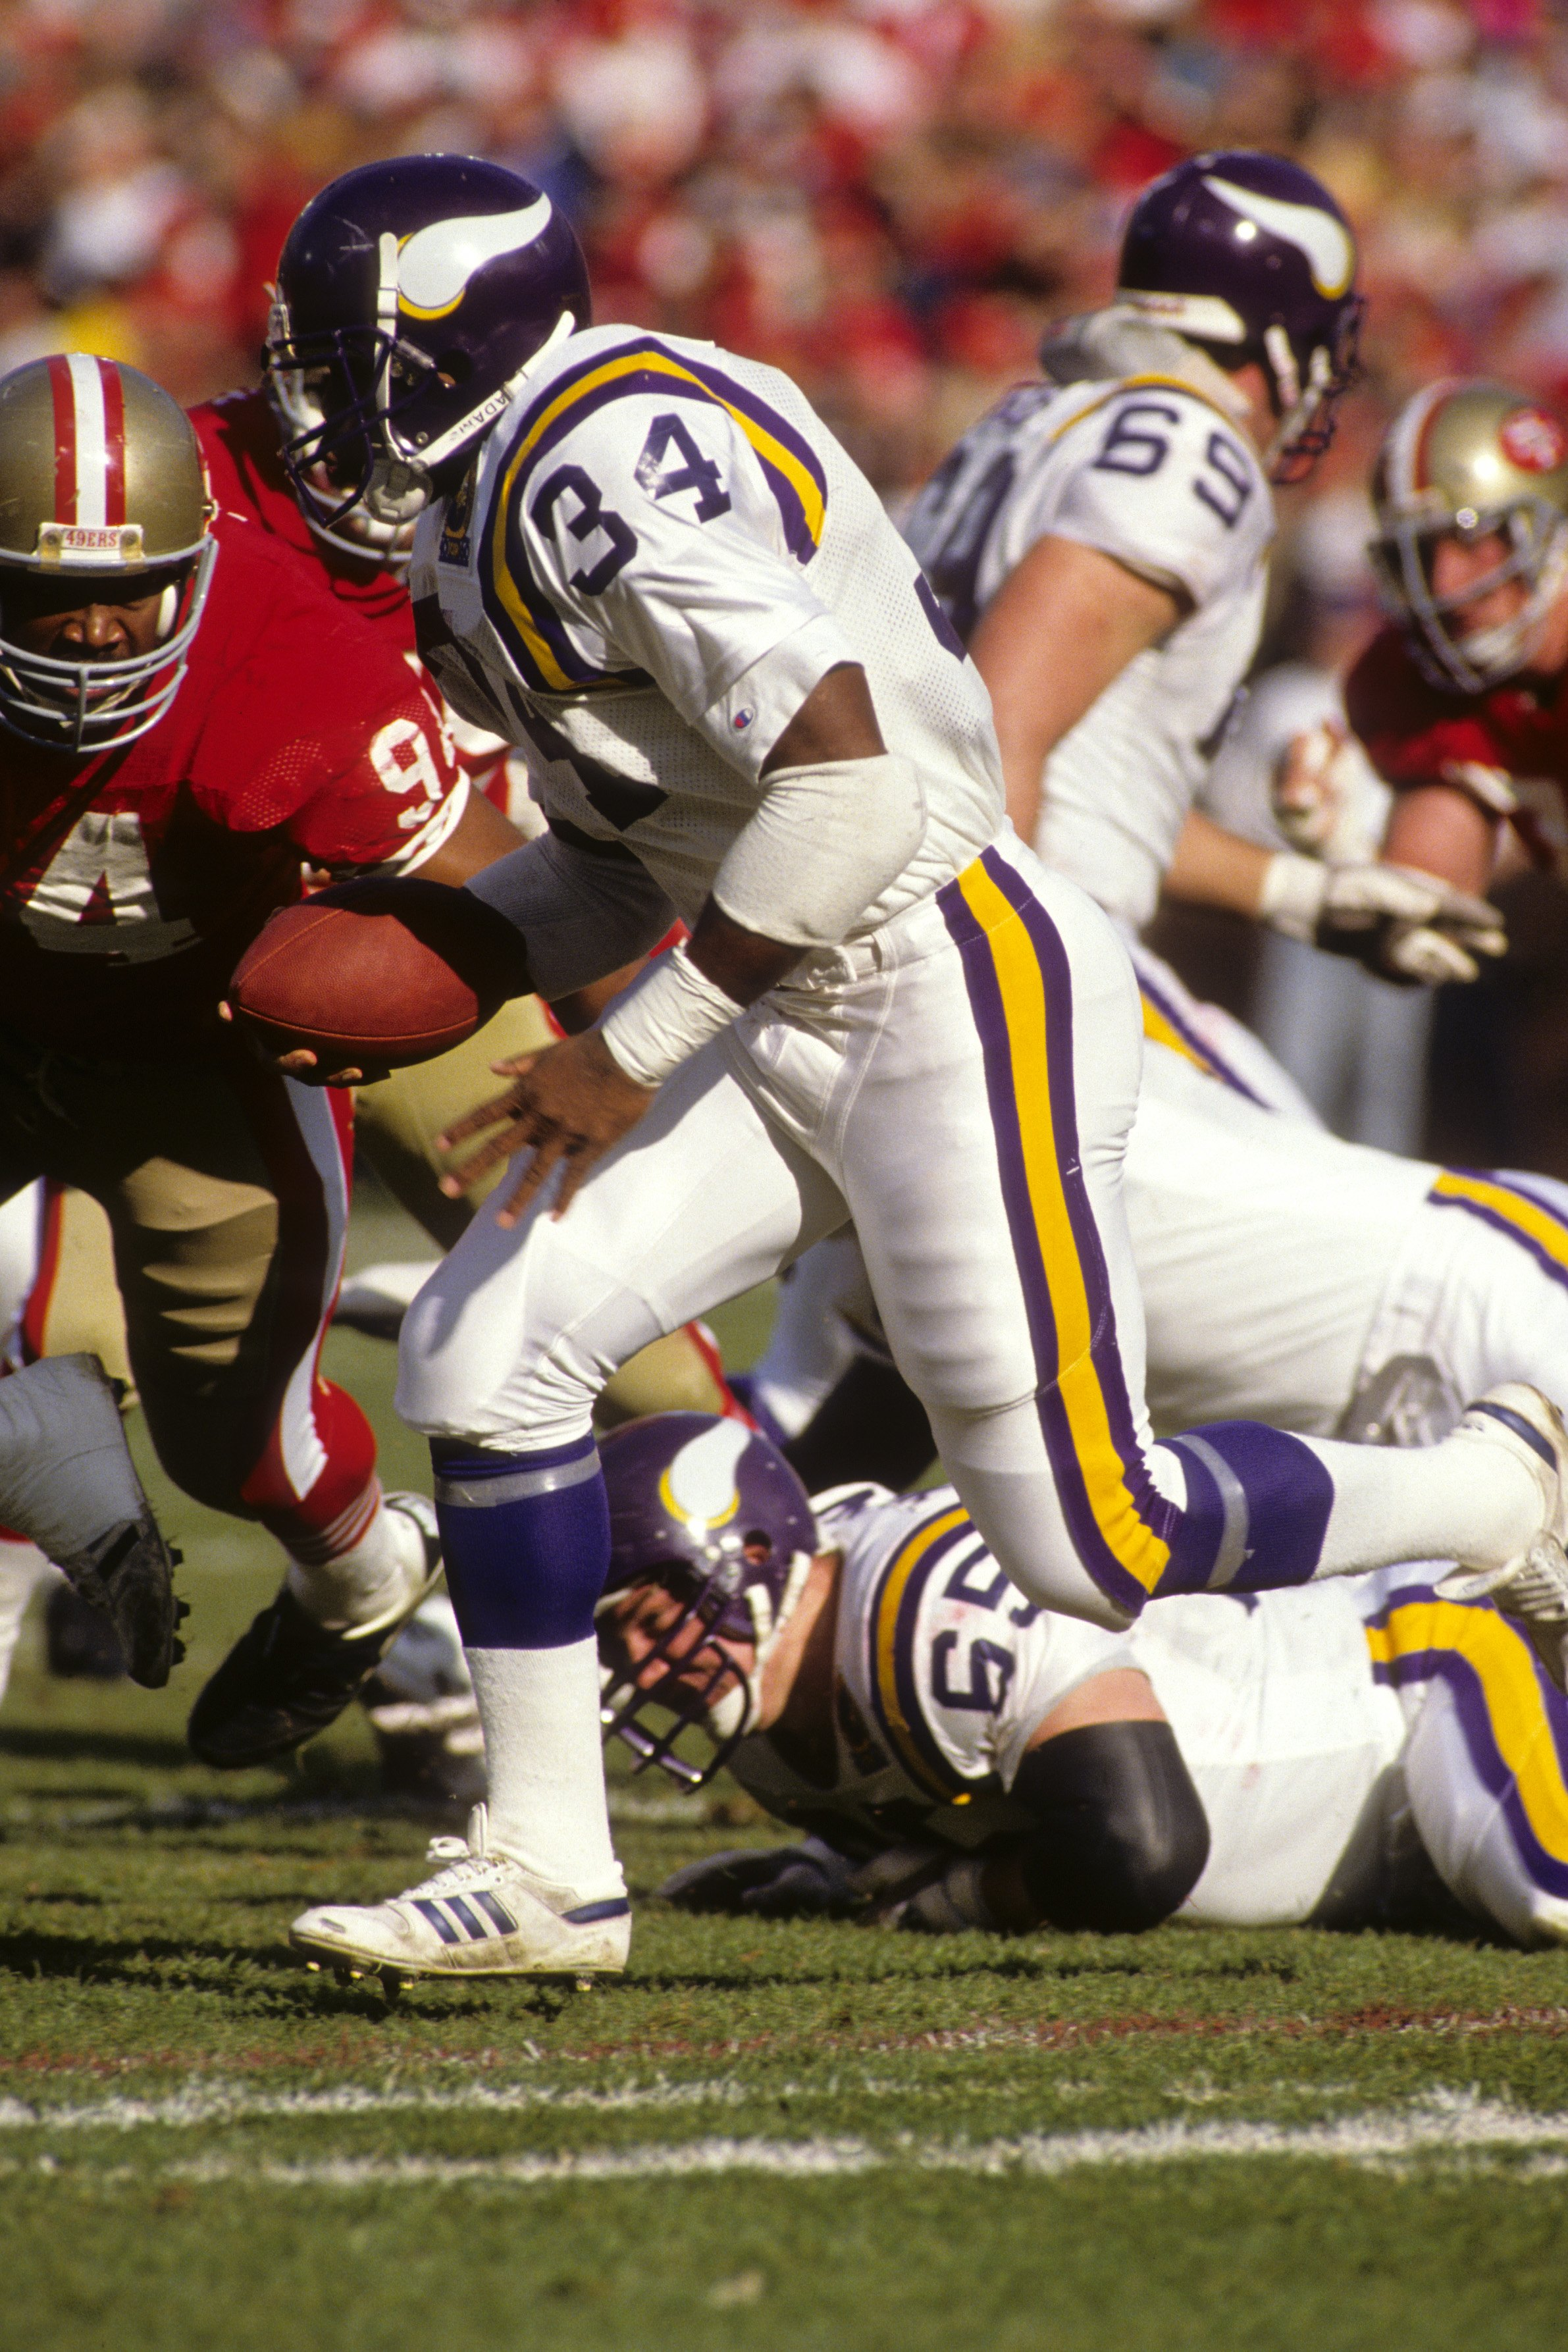 SAN FRANCISCO - JANUARY 6:  Running back Herschel Walker #34 of the Minnesota Vikings rushes for yards during the 1989 NFC Divisional Playoff game against the San Francisco 49ers at Candlestick Park on January 6, 1990 in San Francisco, California.  The 49